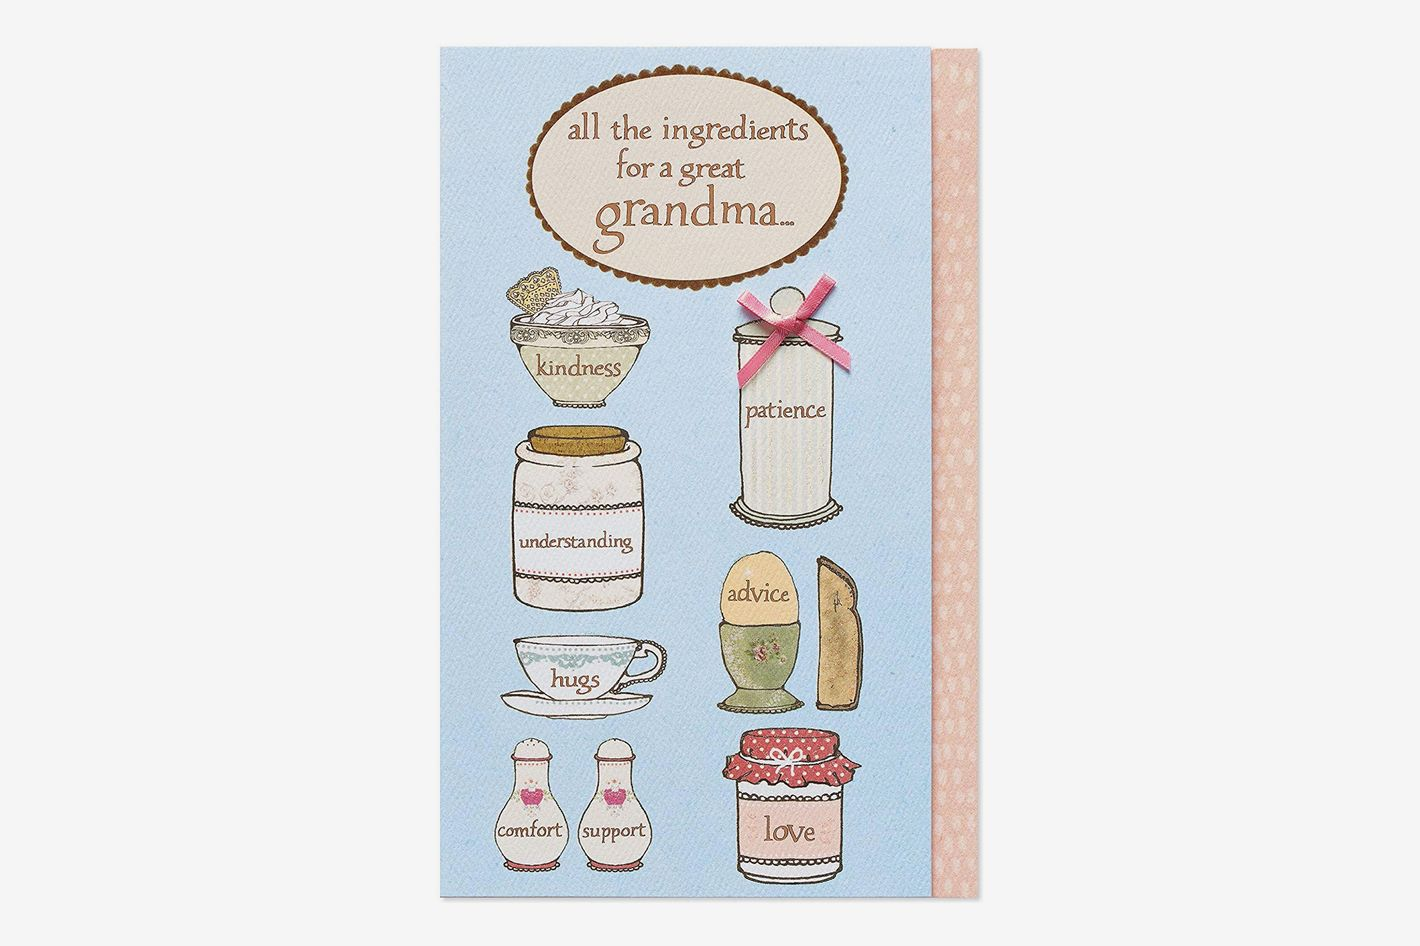 American Greetings Ingredients Mother's Day Greeting Card for Grandma with Glitter